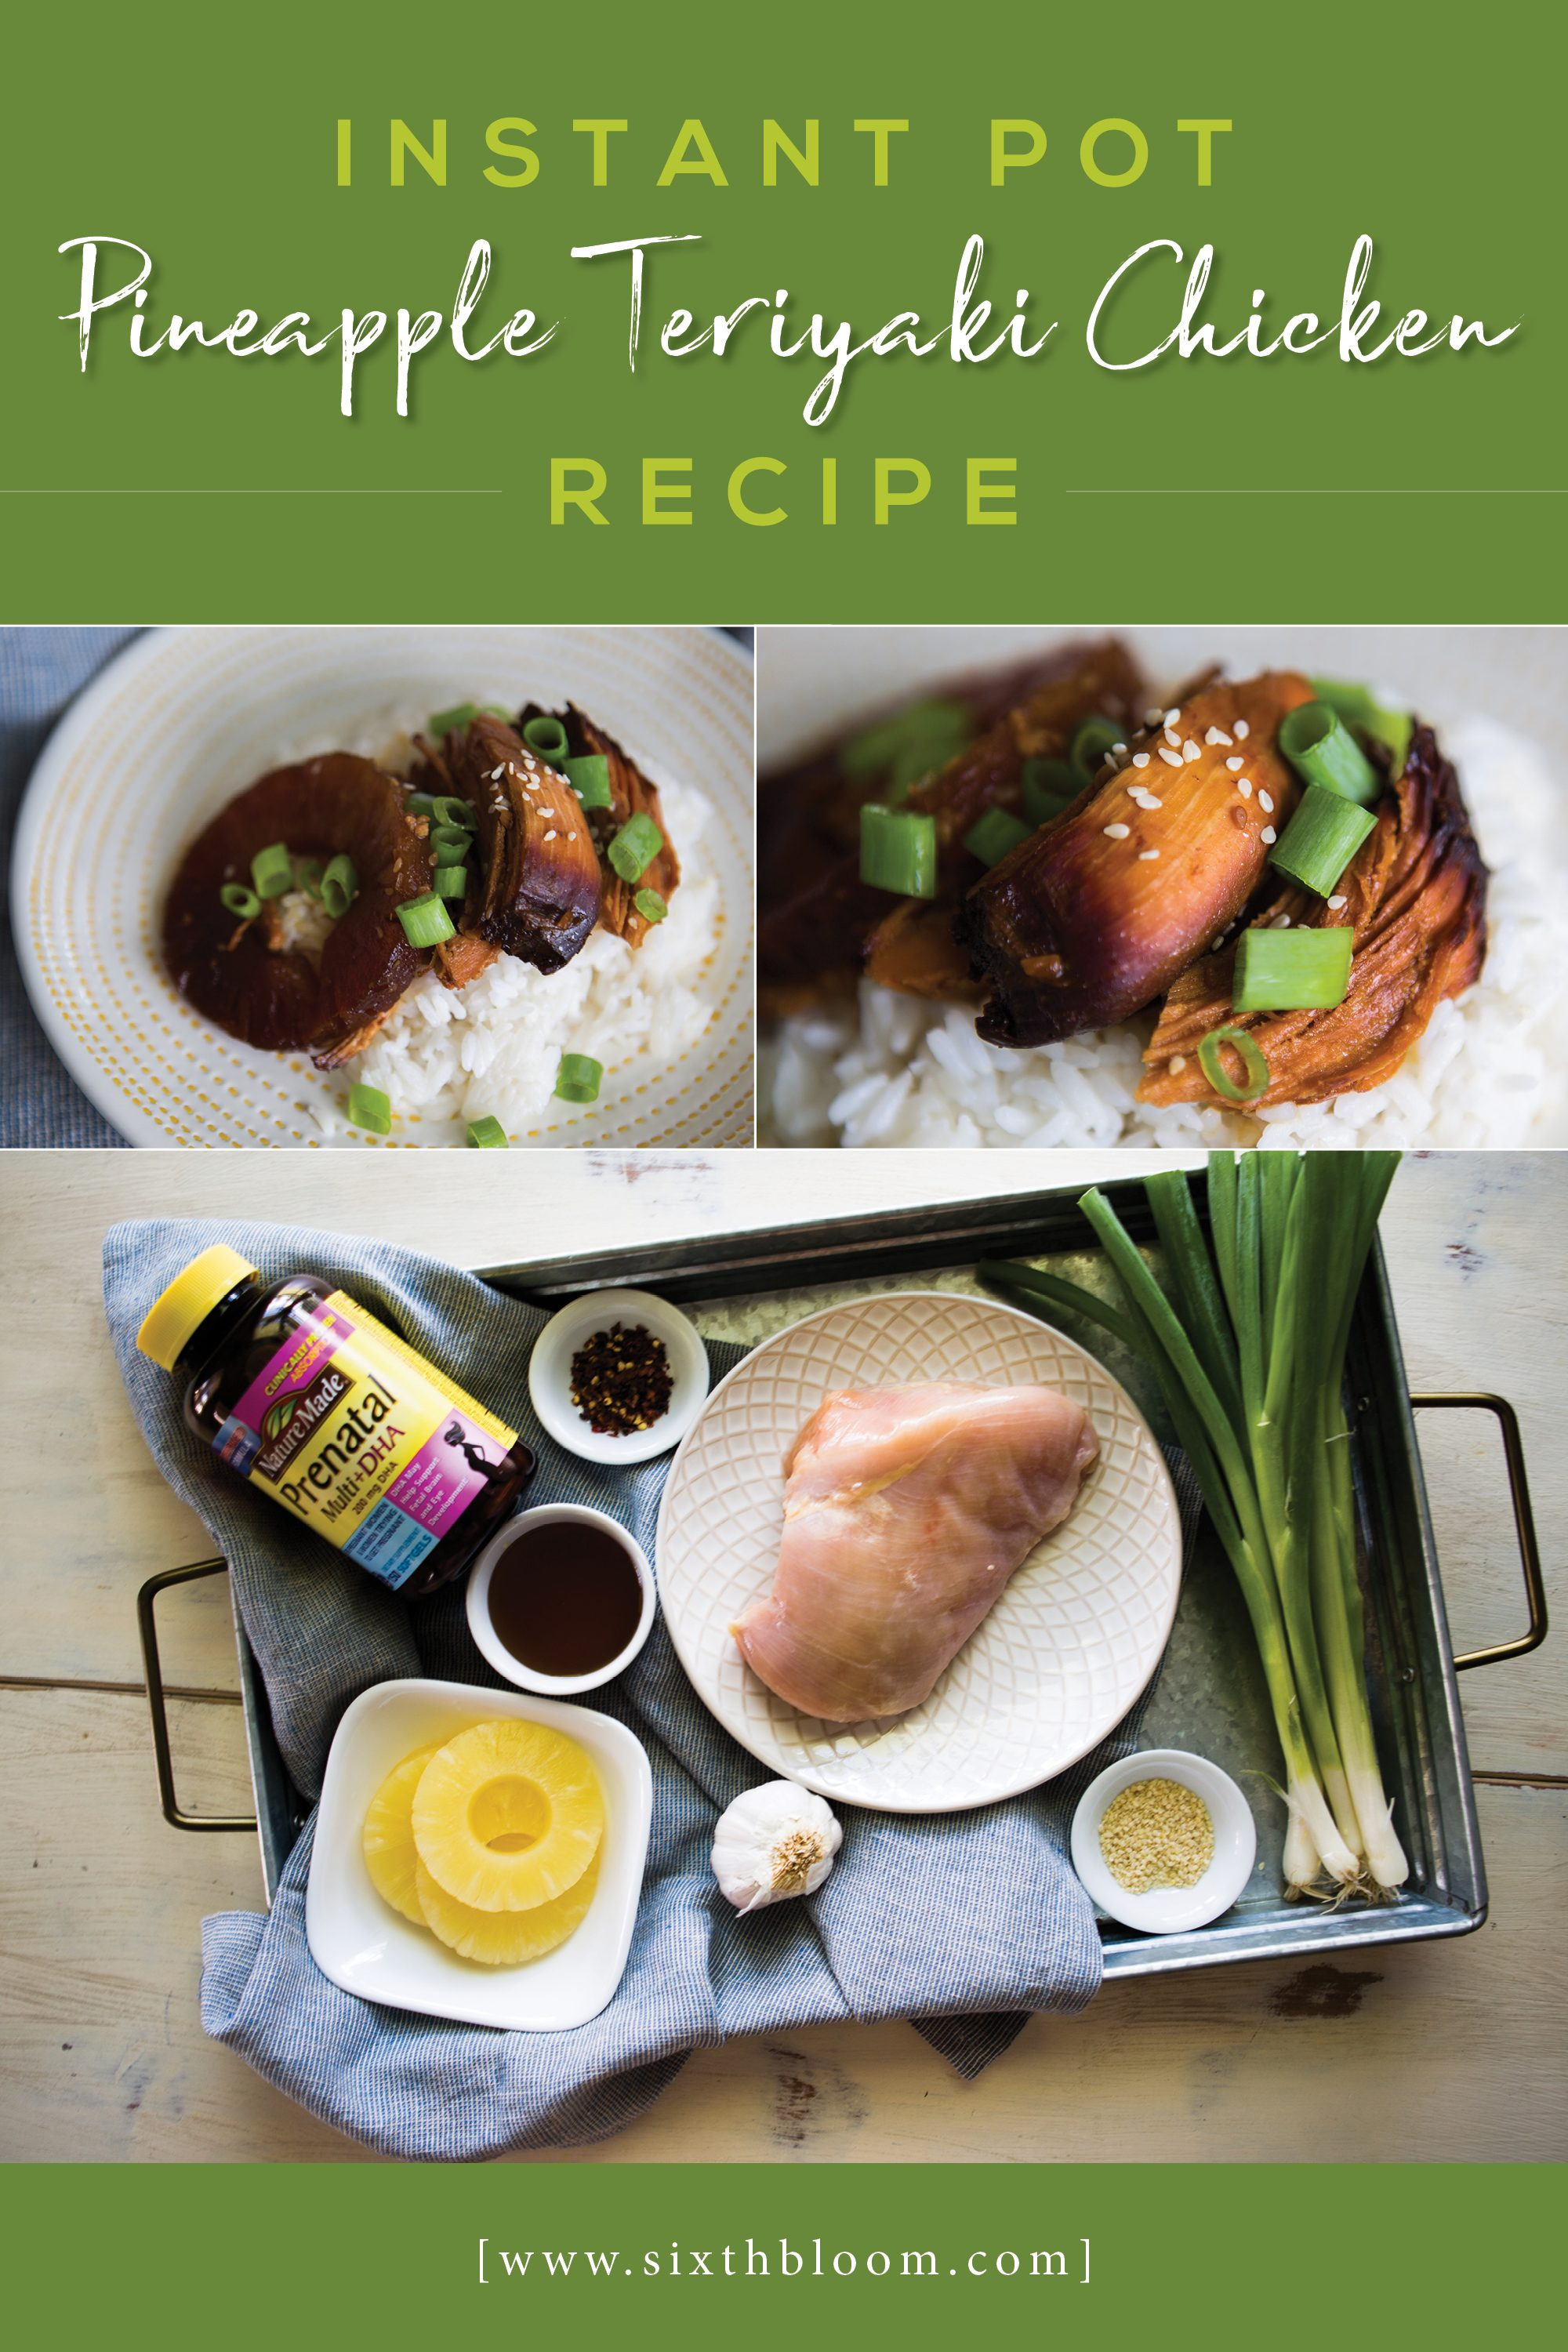 Instant Pot Teriyaki Pineapple Chicken recipe, instant pot, ip recipe, instant pot recipe